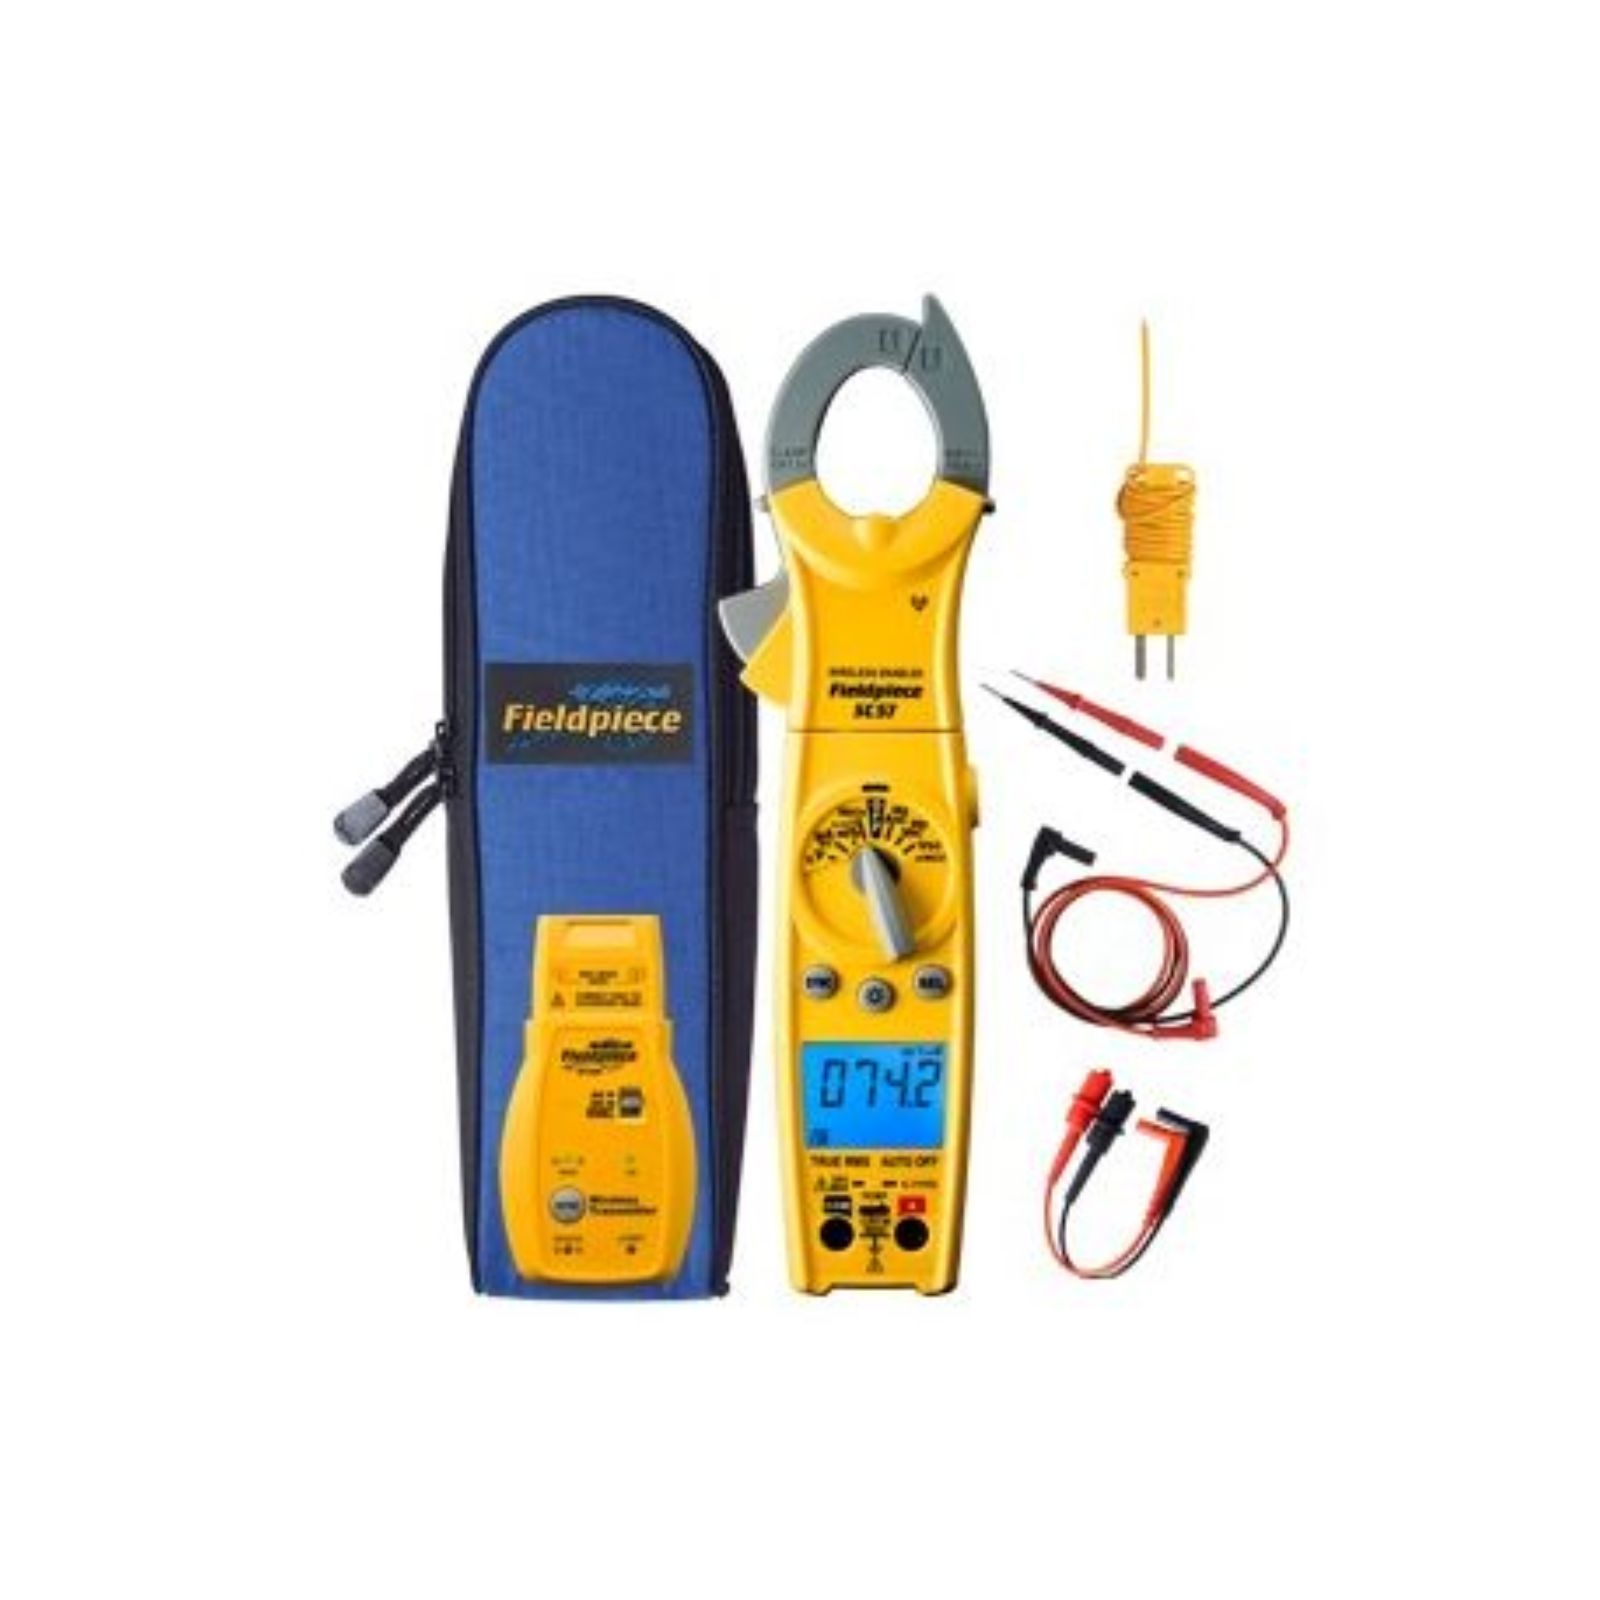 Fieldpiece SC57 - Wireless Swivel Clamp Meter with Transmitter for HVACR Professionals